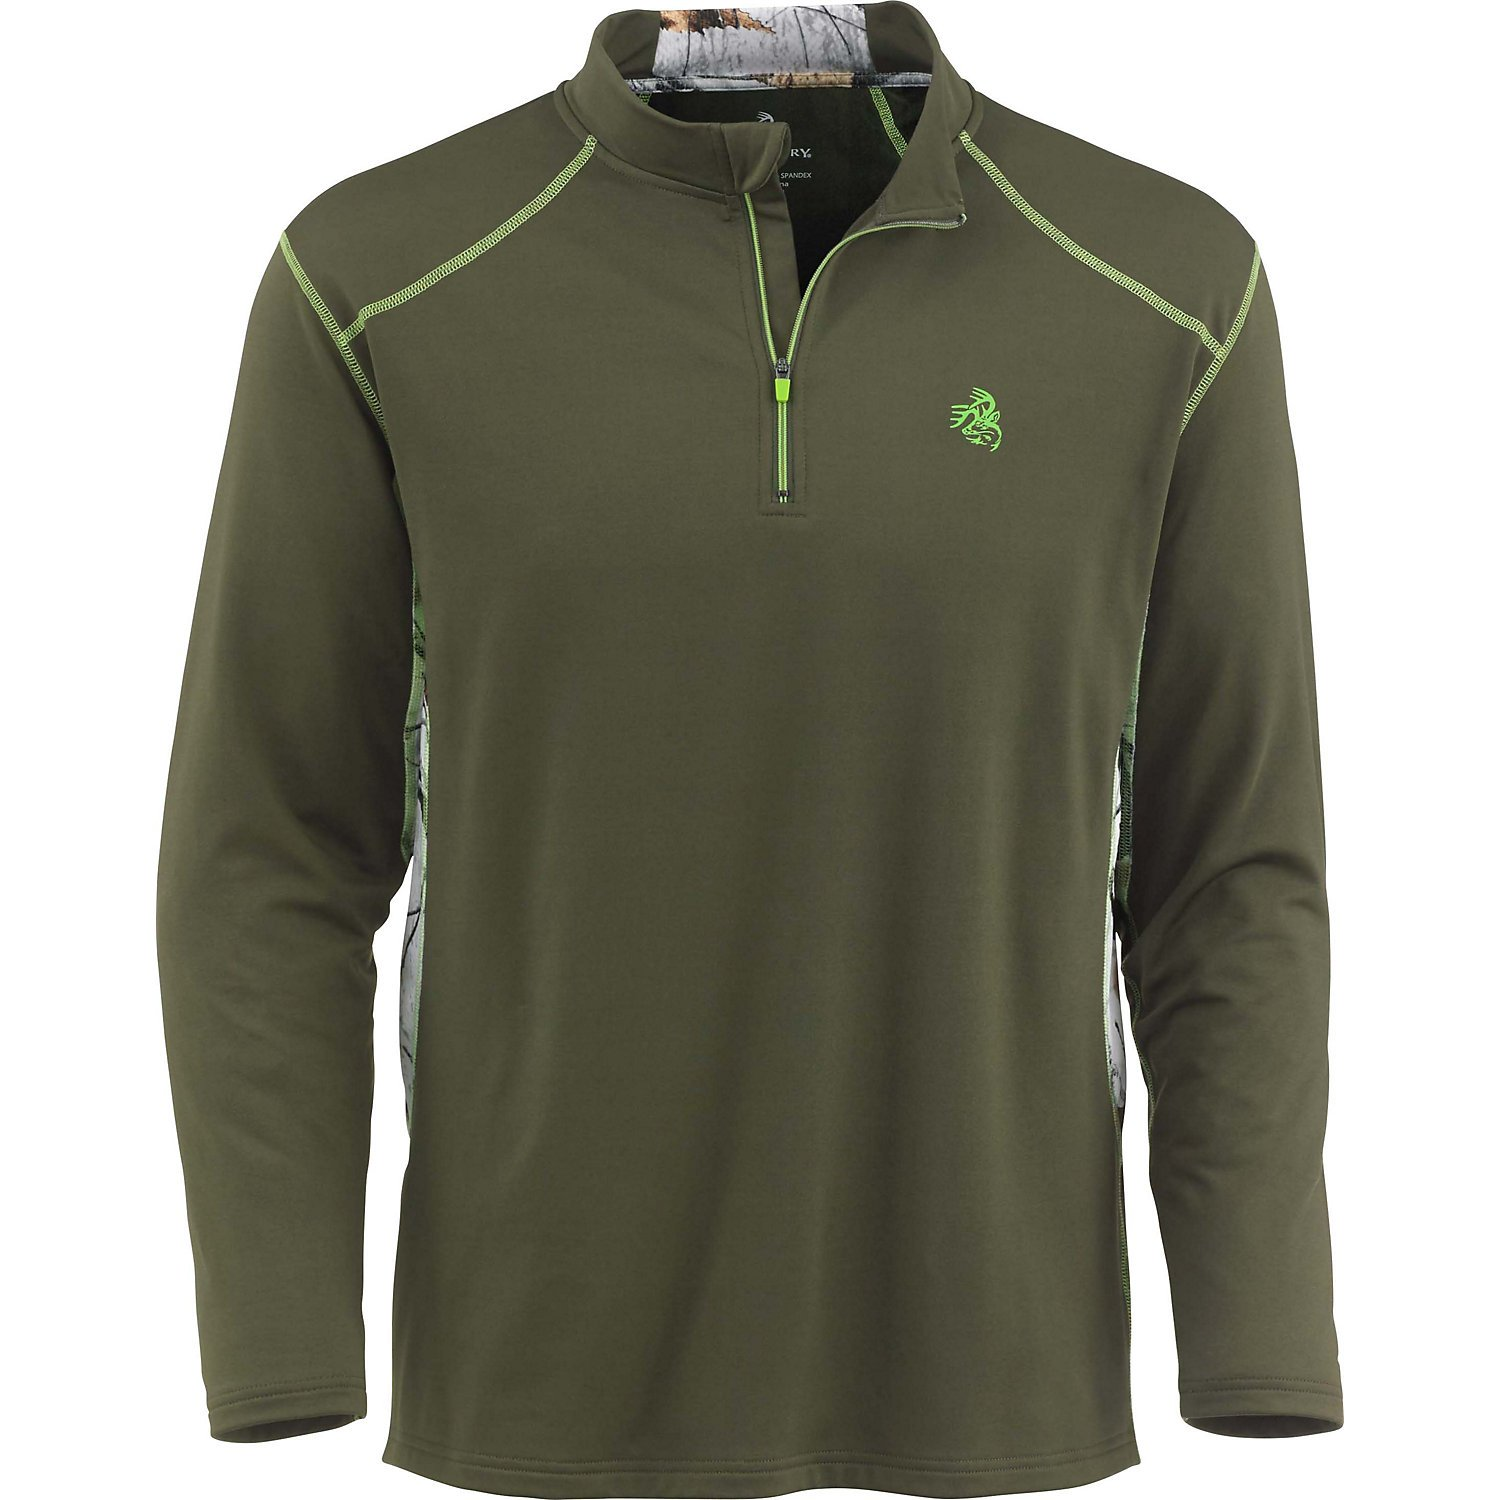 Legendary Whitetails Endurance Performance Quarter Zip